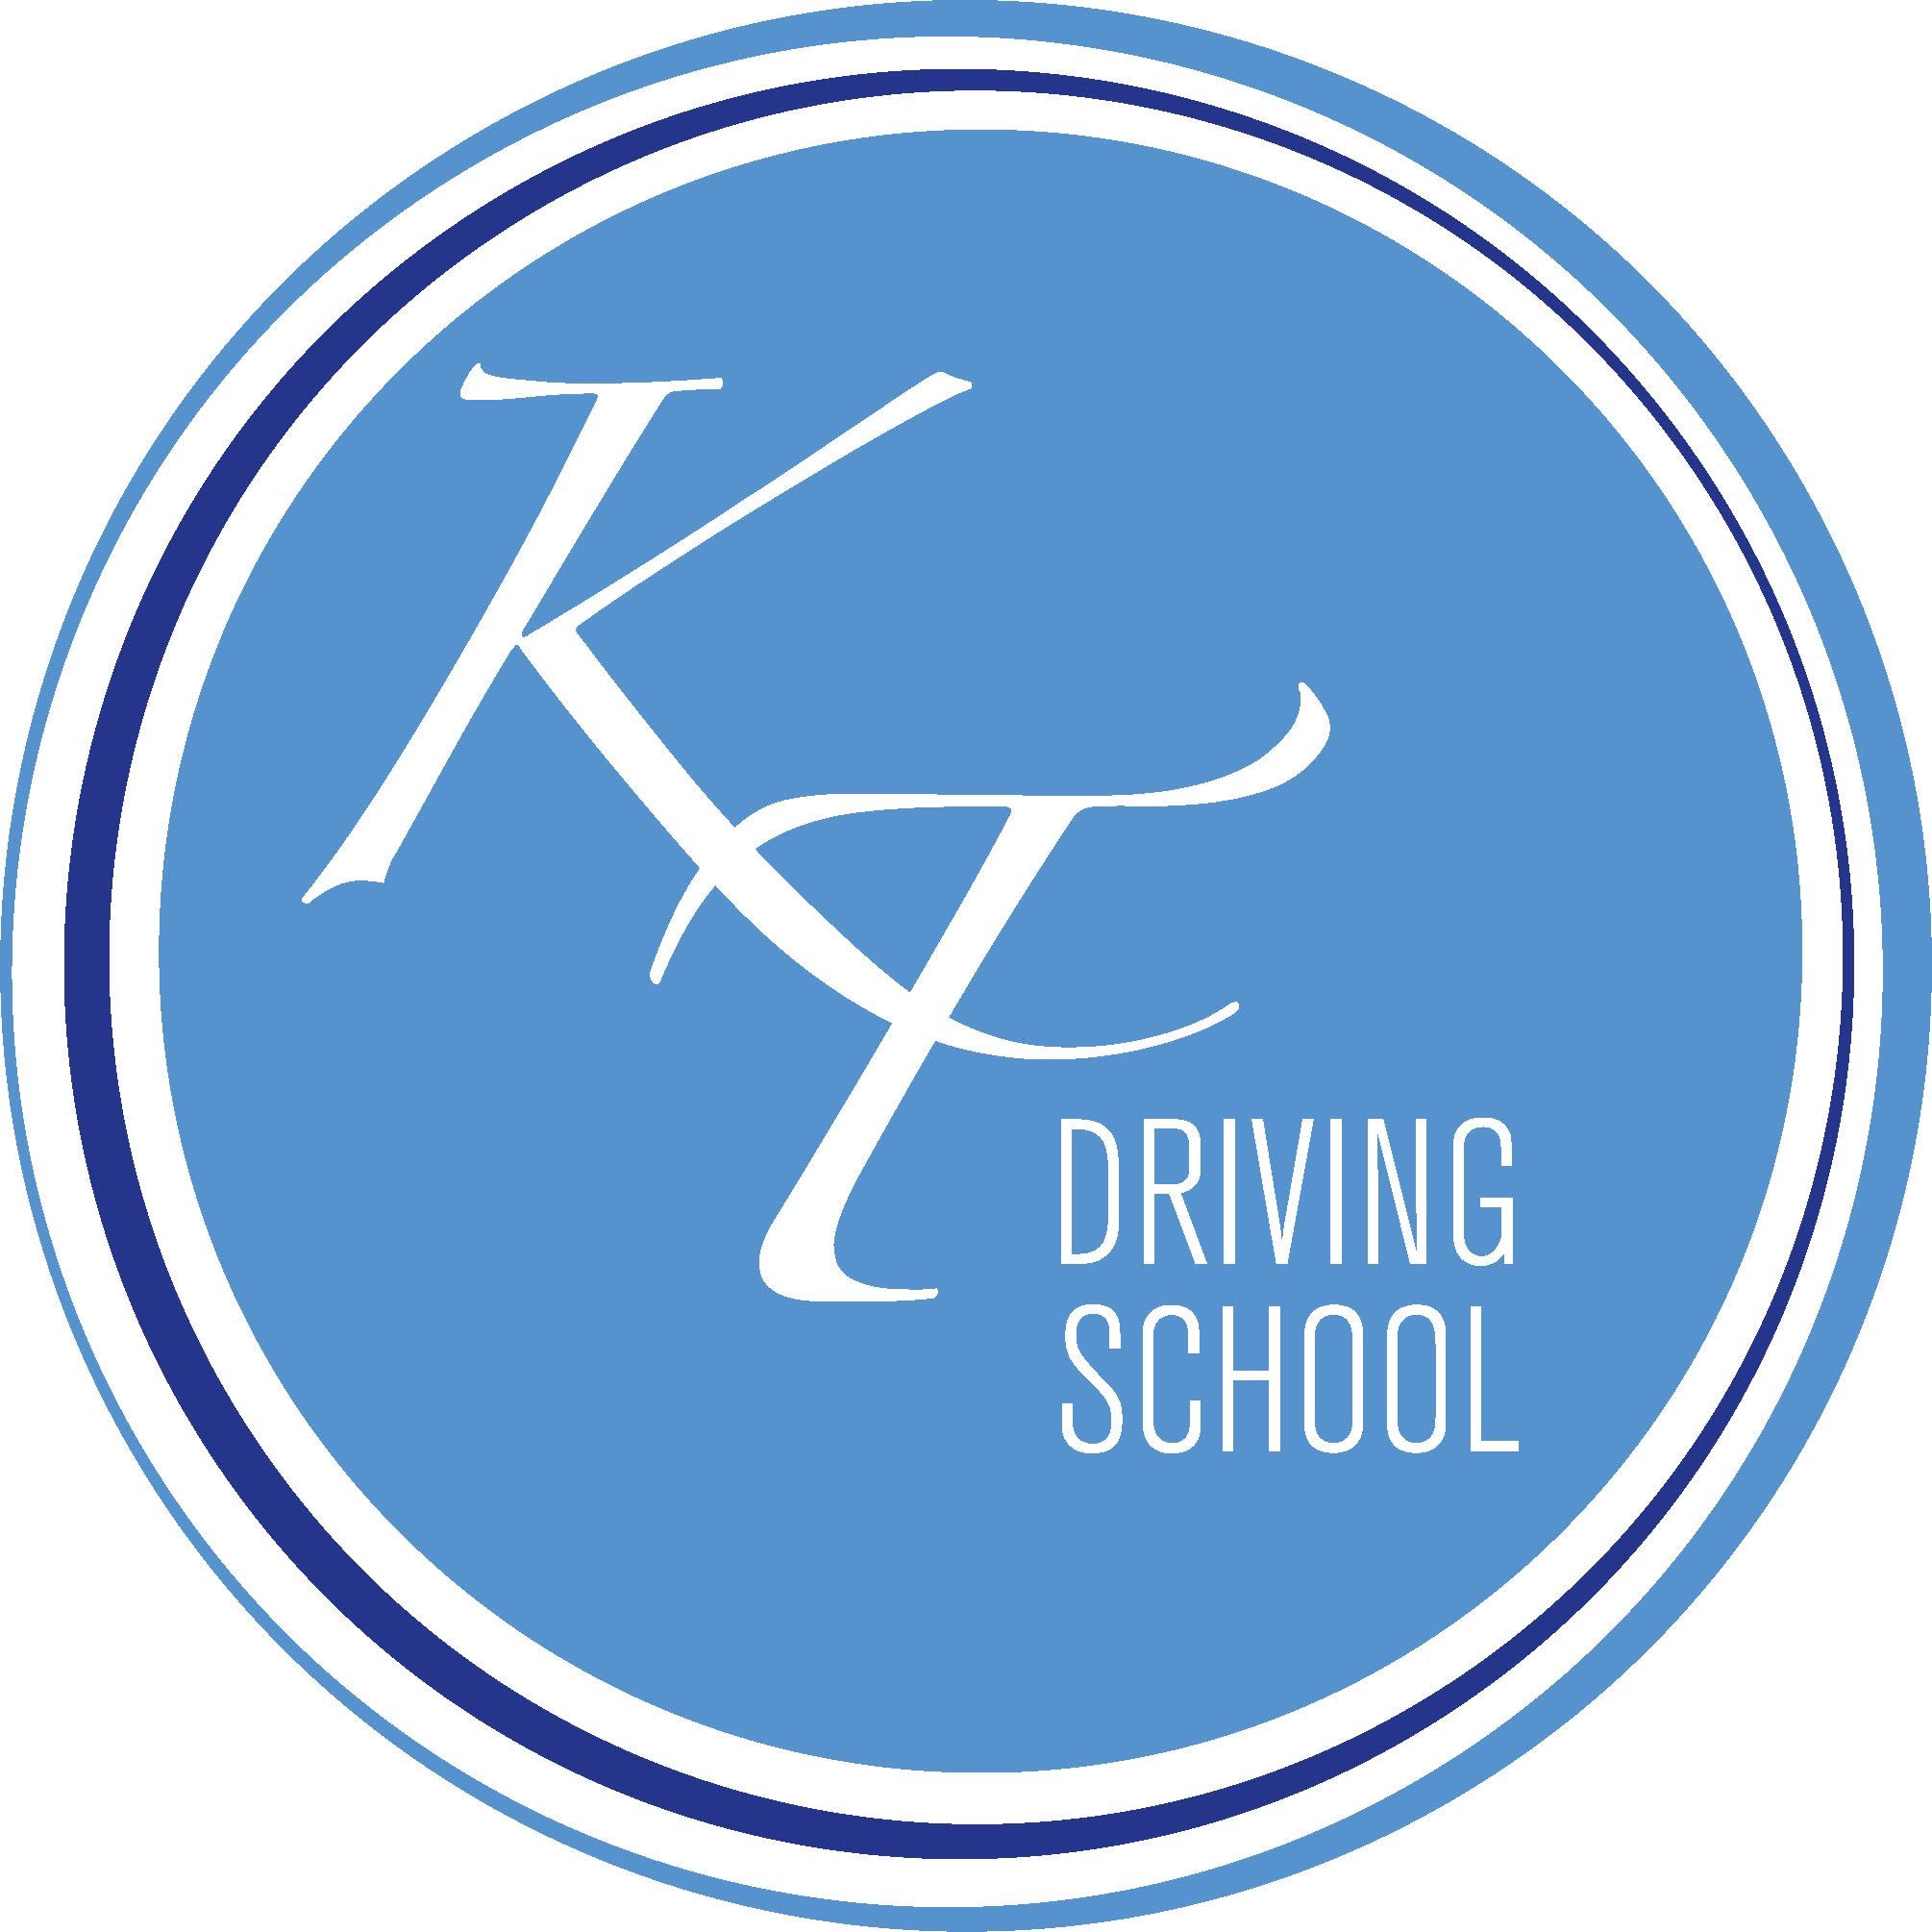 KT Driving School - Portsmouth, Hampshire PO3 6NF - 07769 195423 | ShowMeLocal.com